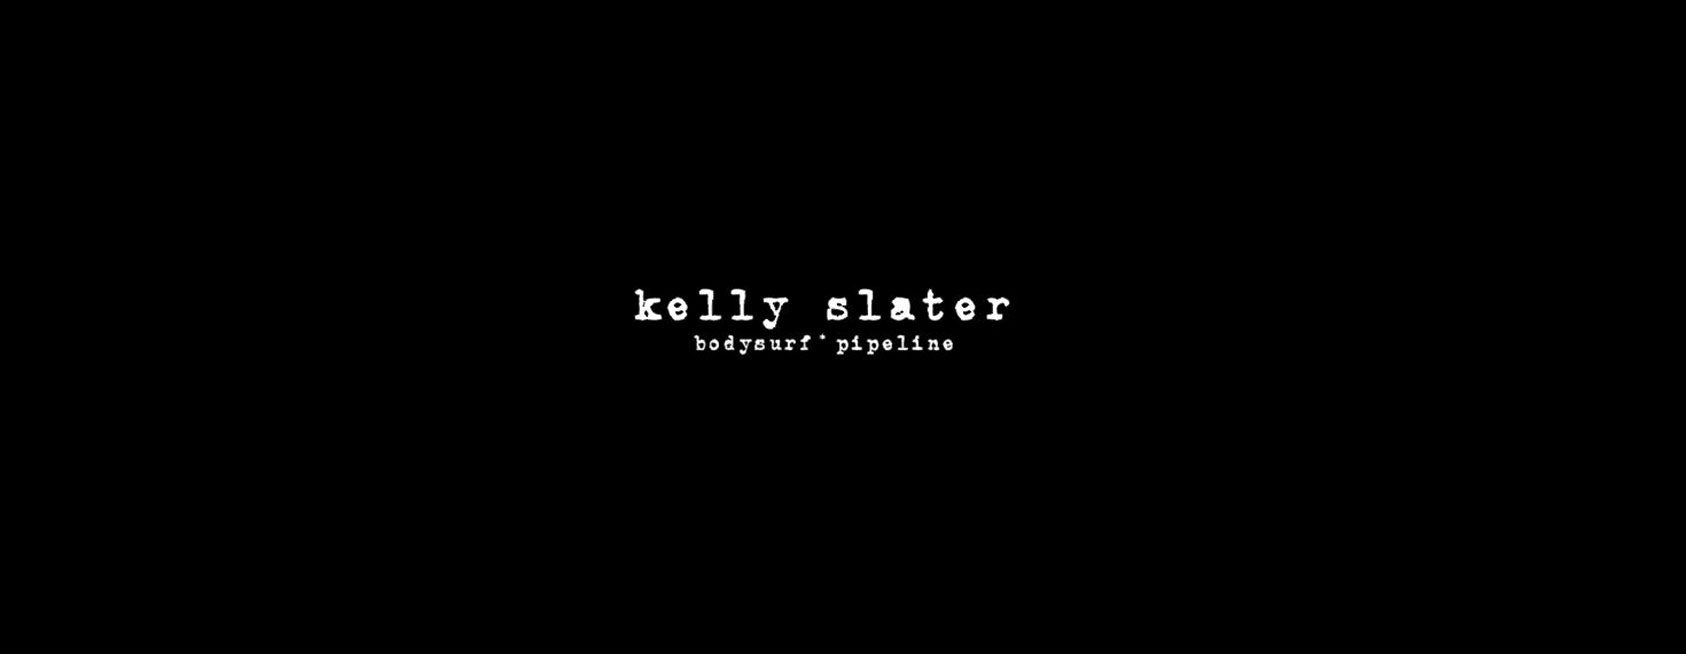 kelly slater bodysurfs Pipeline